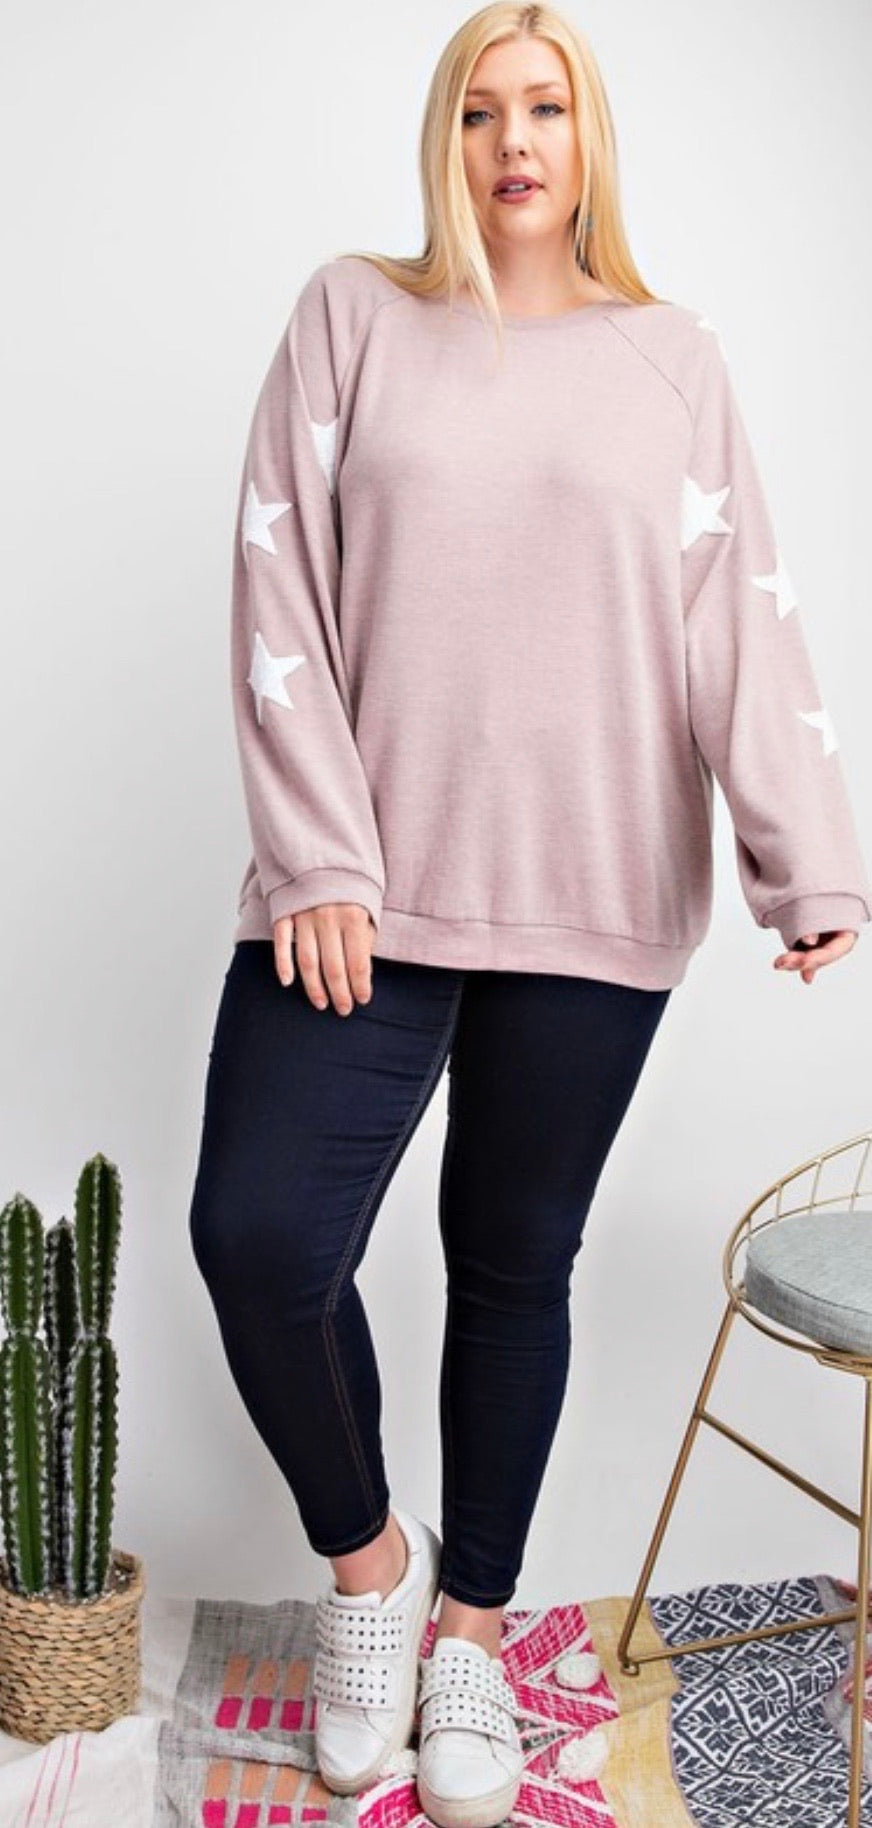 Rose knit with star patch sleeves | Cheeky Cactus